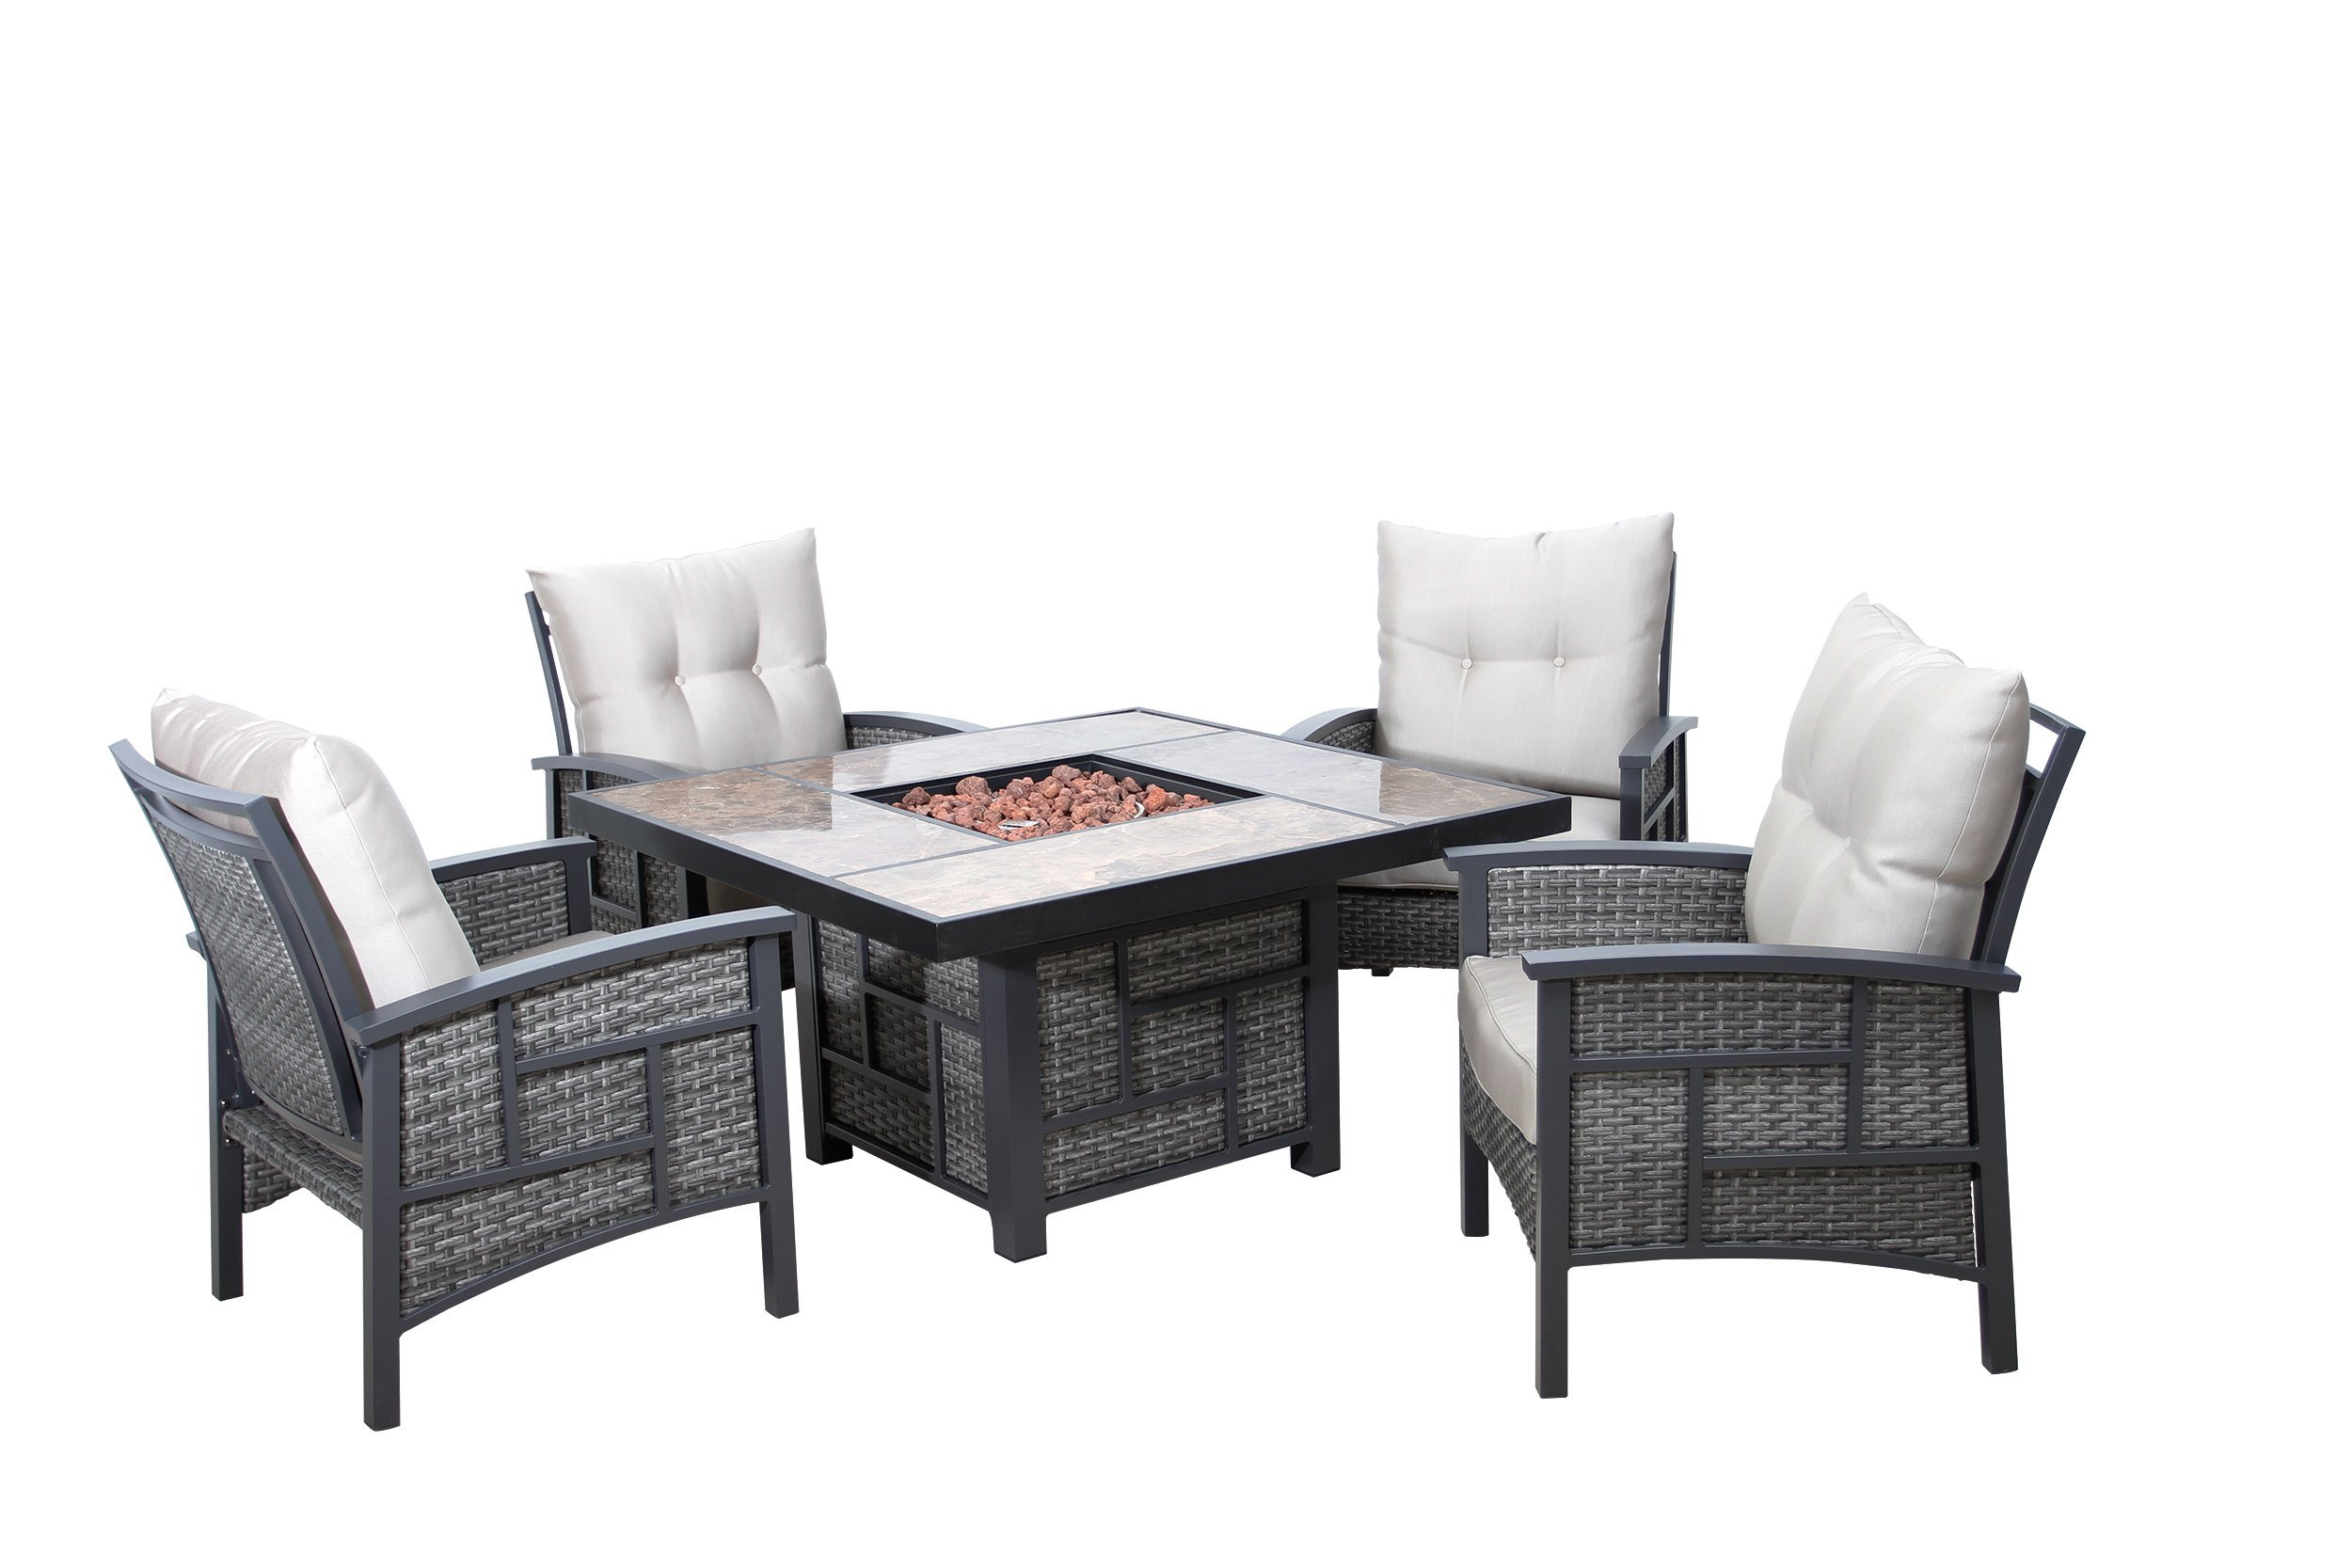 Image of: China Garden Modern Hotel Fire Pit Table And Rattan Dining Chair Home Outdoor Heater Wicker Furniture China Garden Furniture Furniture